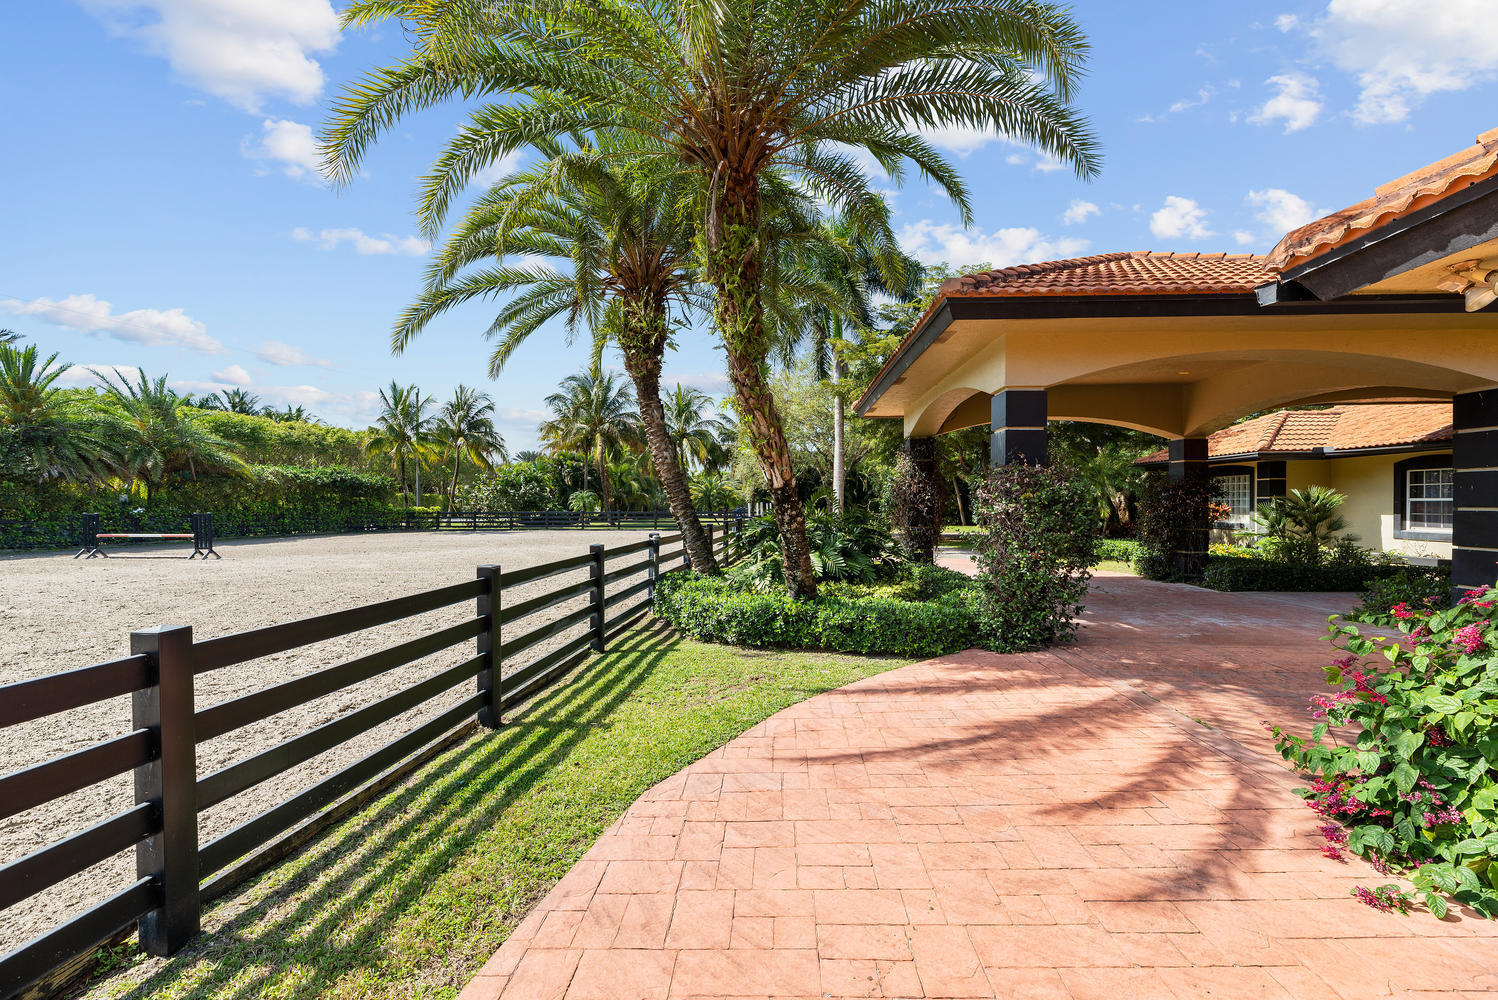 2996, 2984, 2968 Appaloosa Trail, Wellington, Florida 33414, 9 Bedrooms Bedrooms, ,7.4 BathroomsBathrooms,Single Family,For Sale, 2968 Appaloosa,RX-10603445